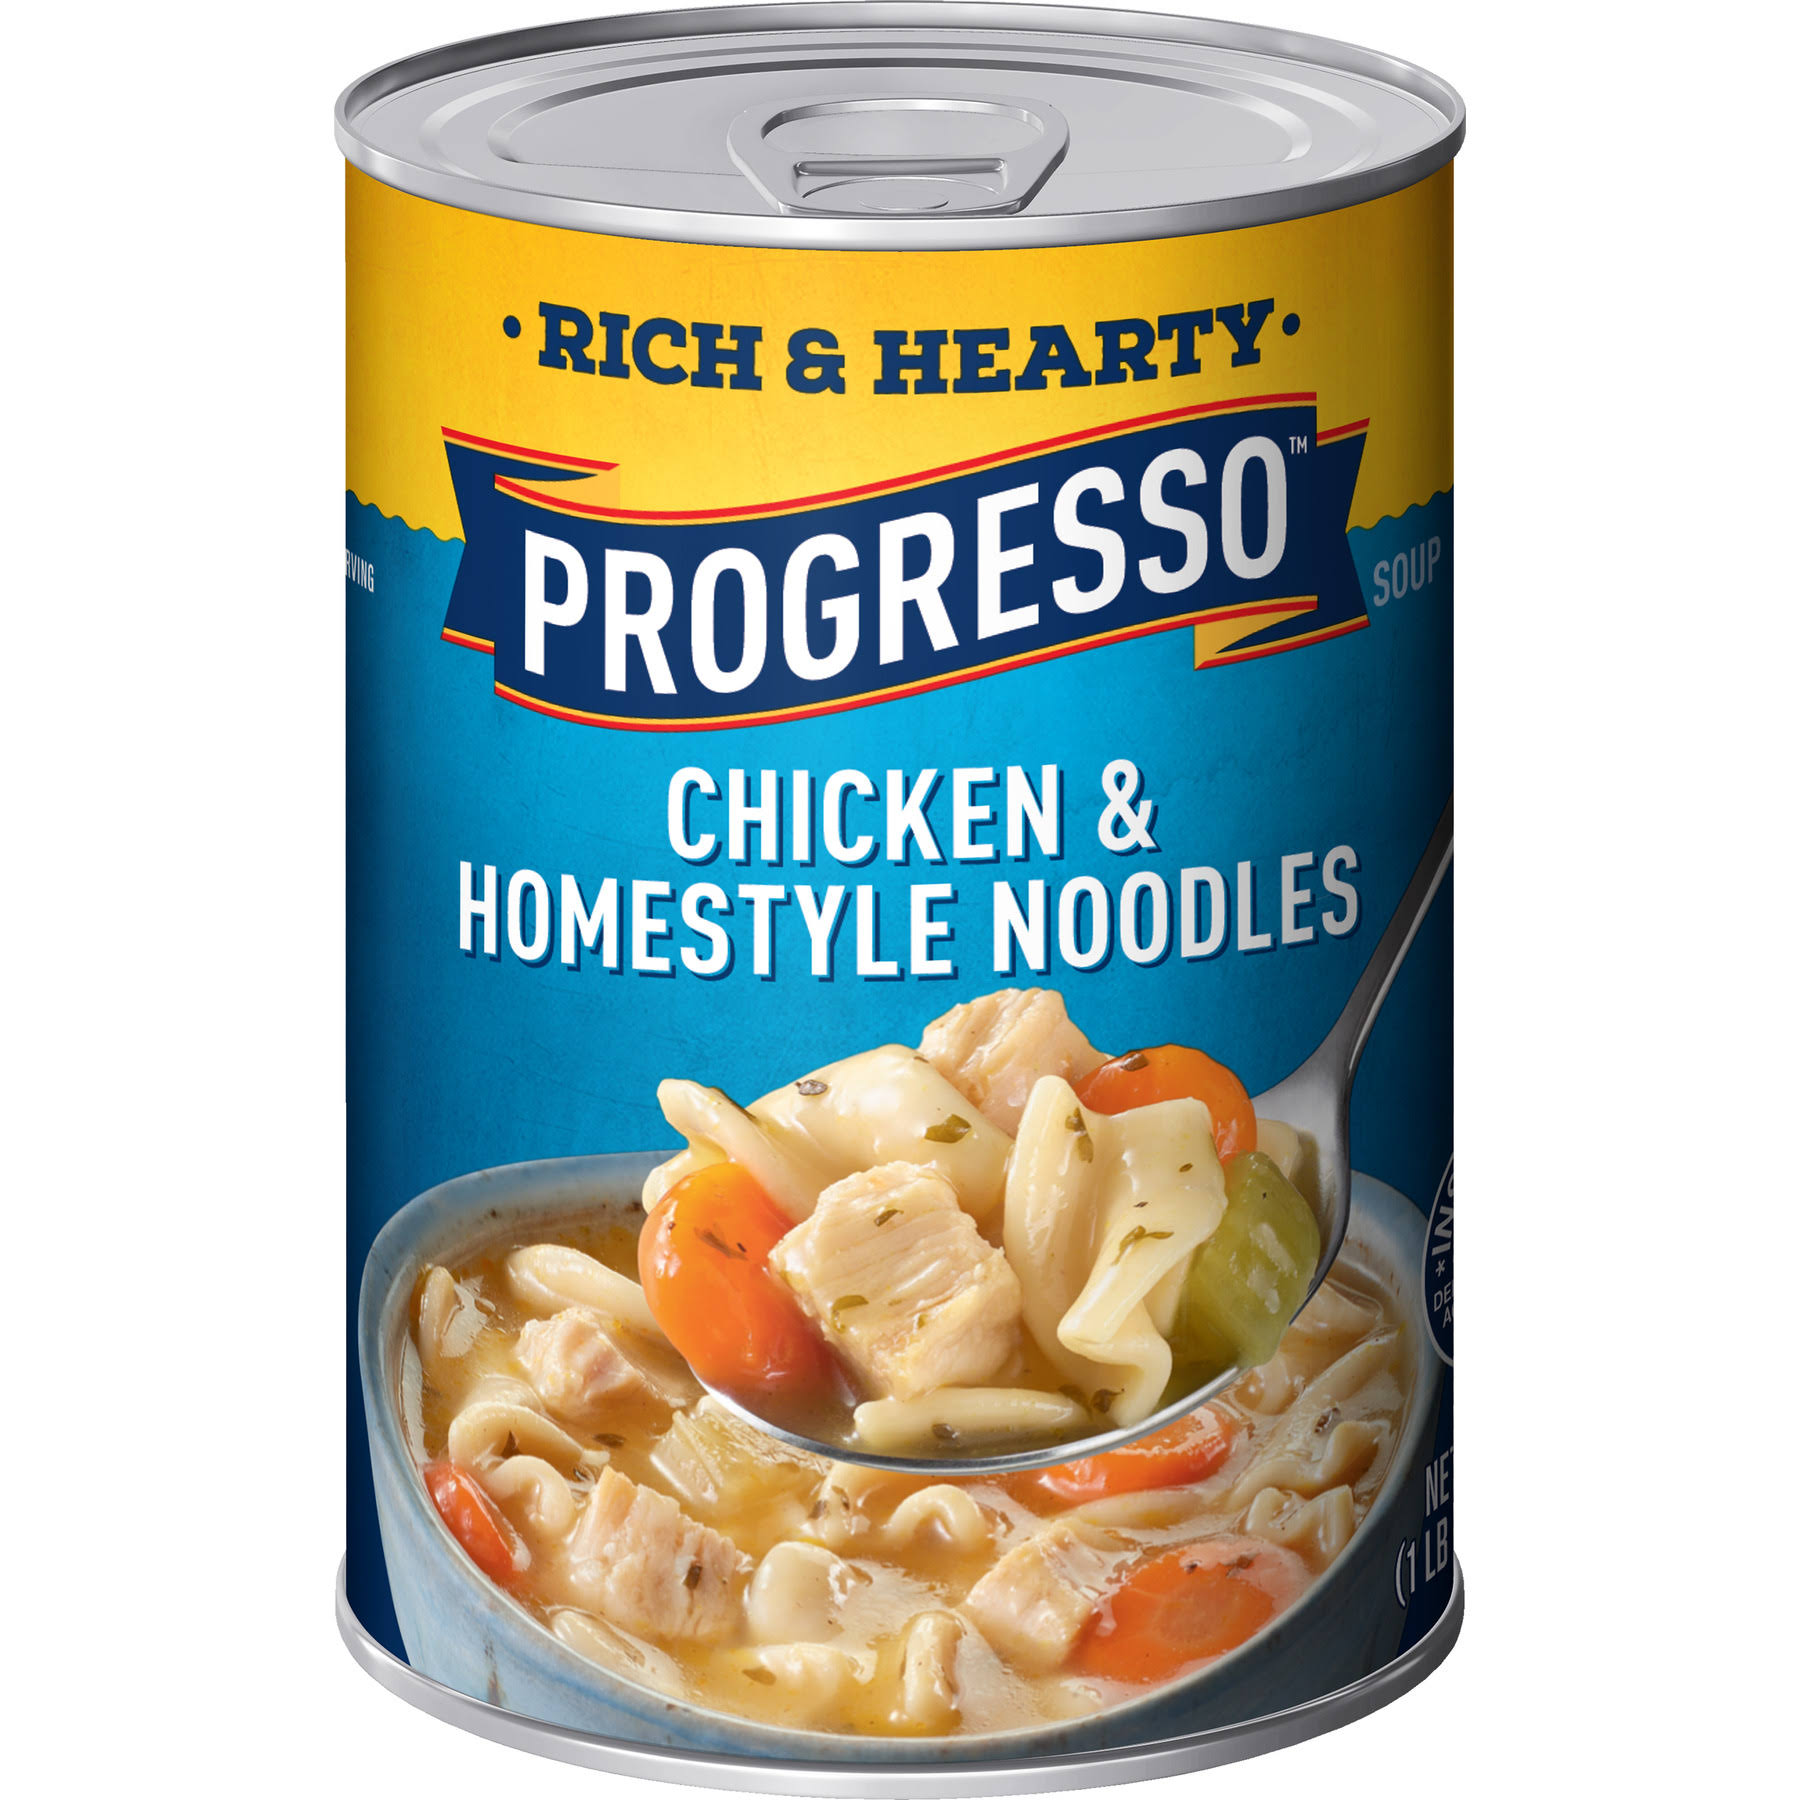 Progresso Chicken and Homestyle Noodles Soup - 19oz